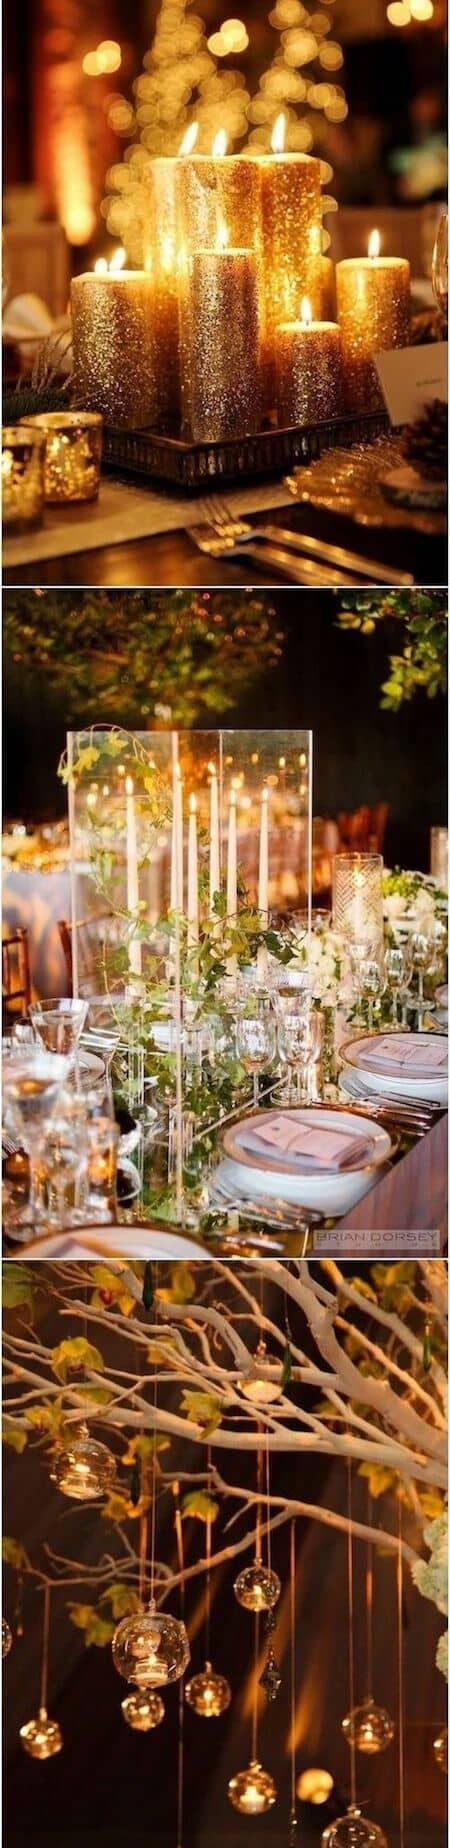 Candle lighting ideas for your wedding.